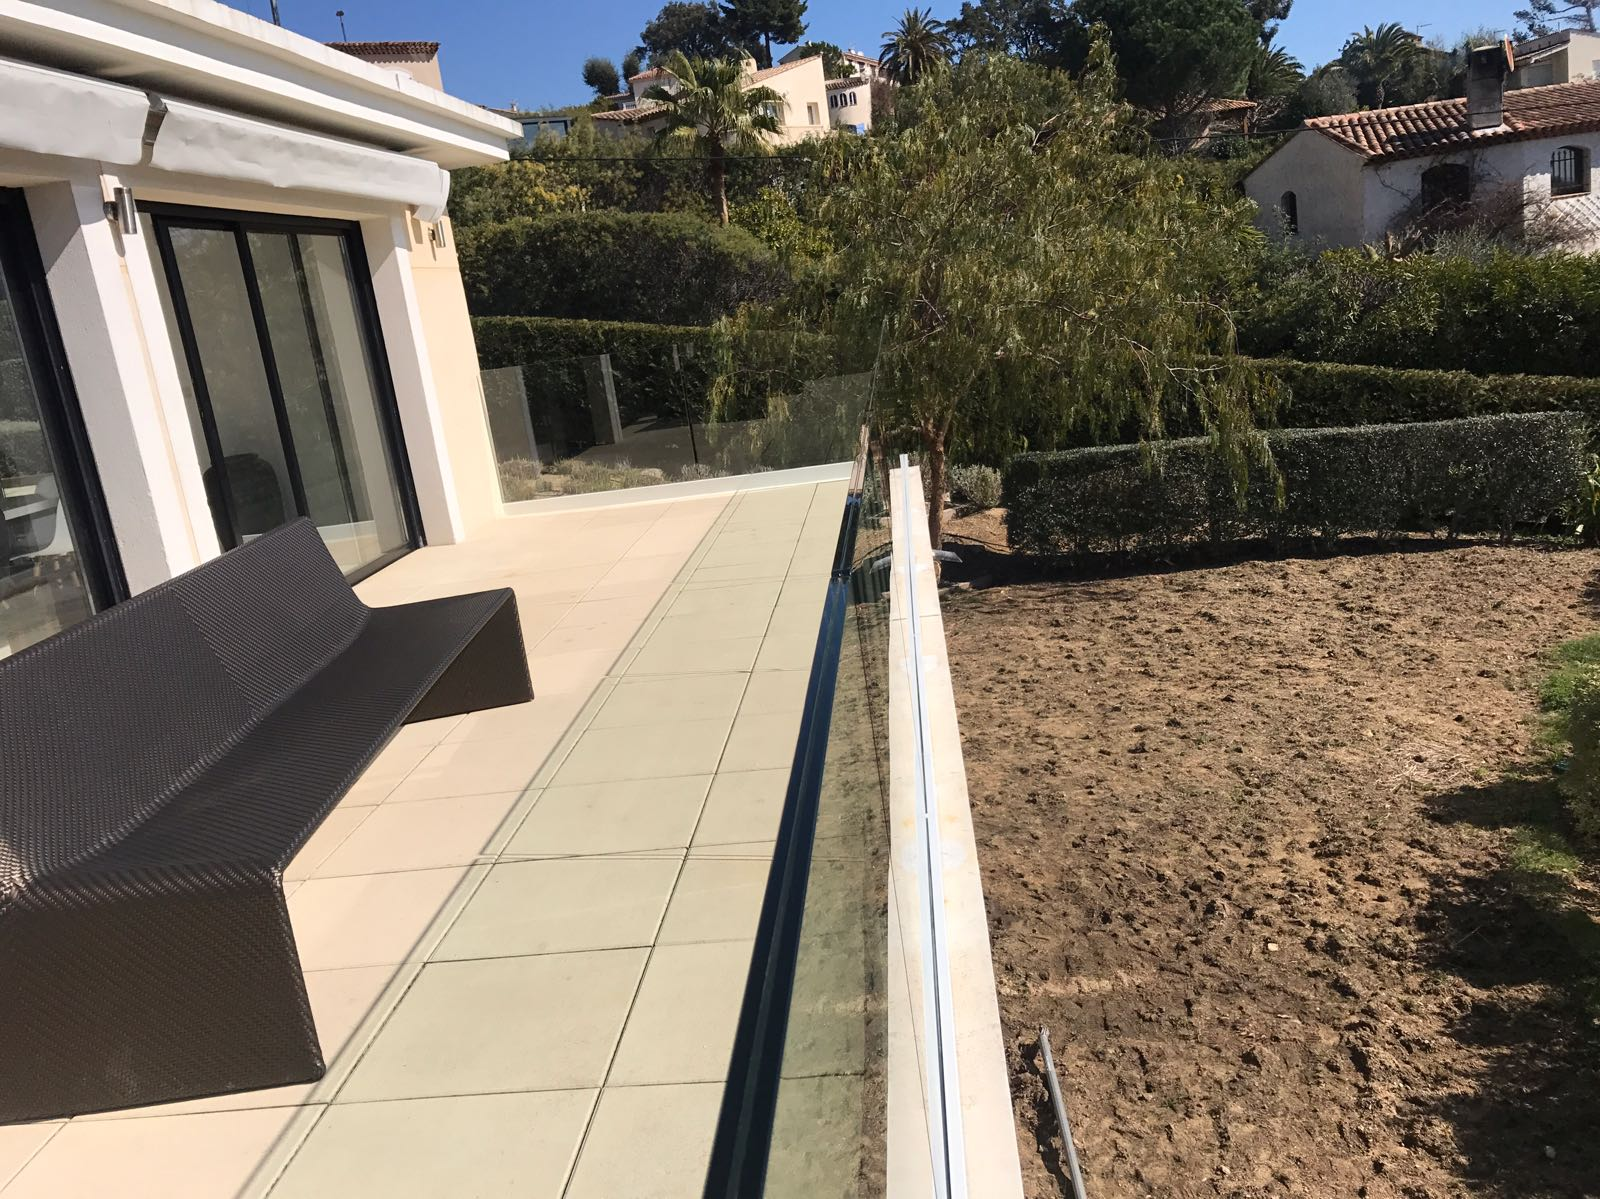 External glass balustrade to veranda